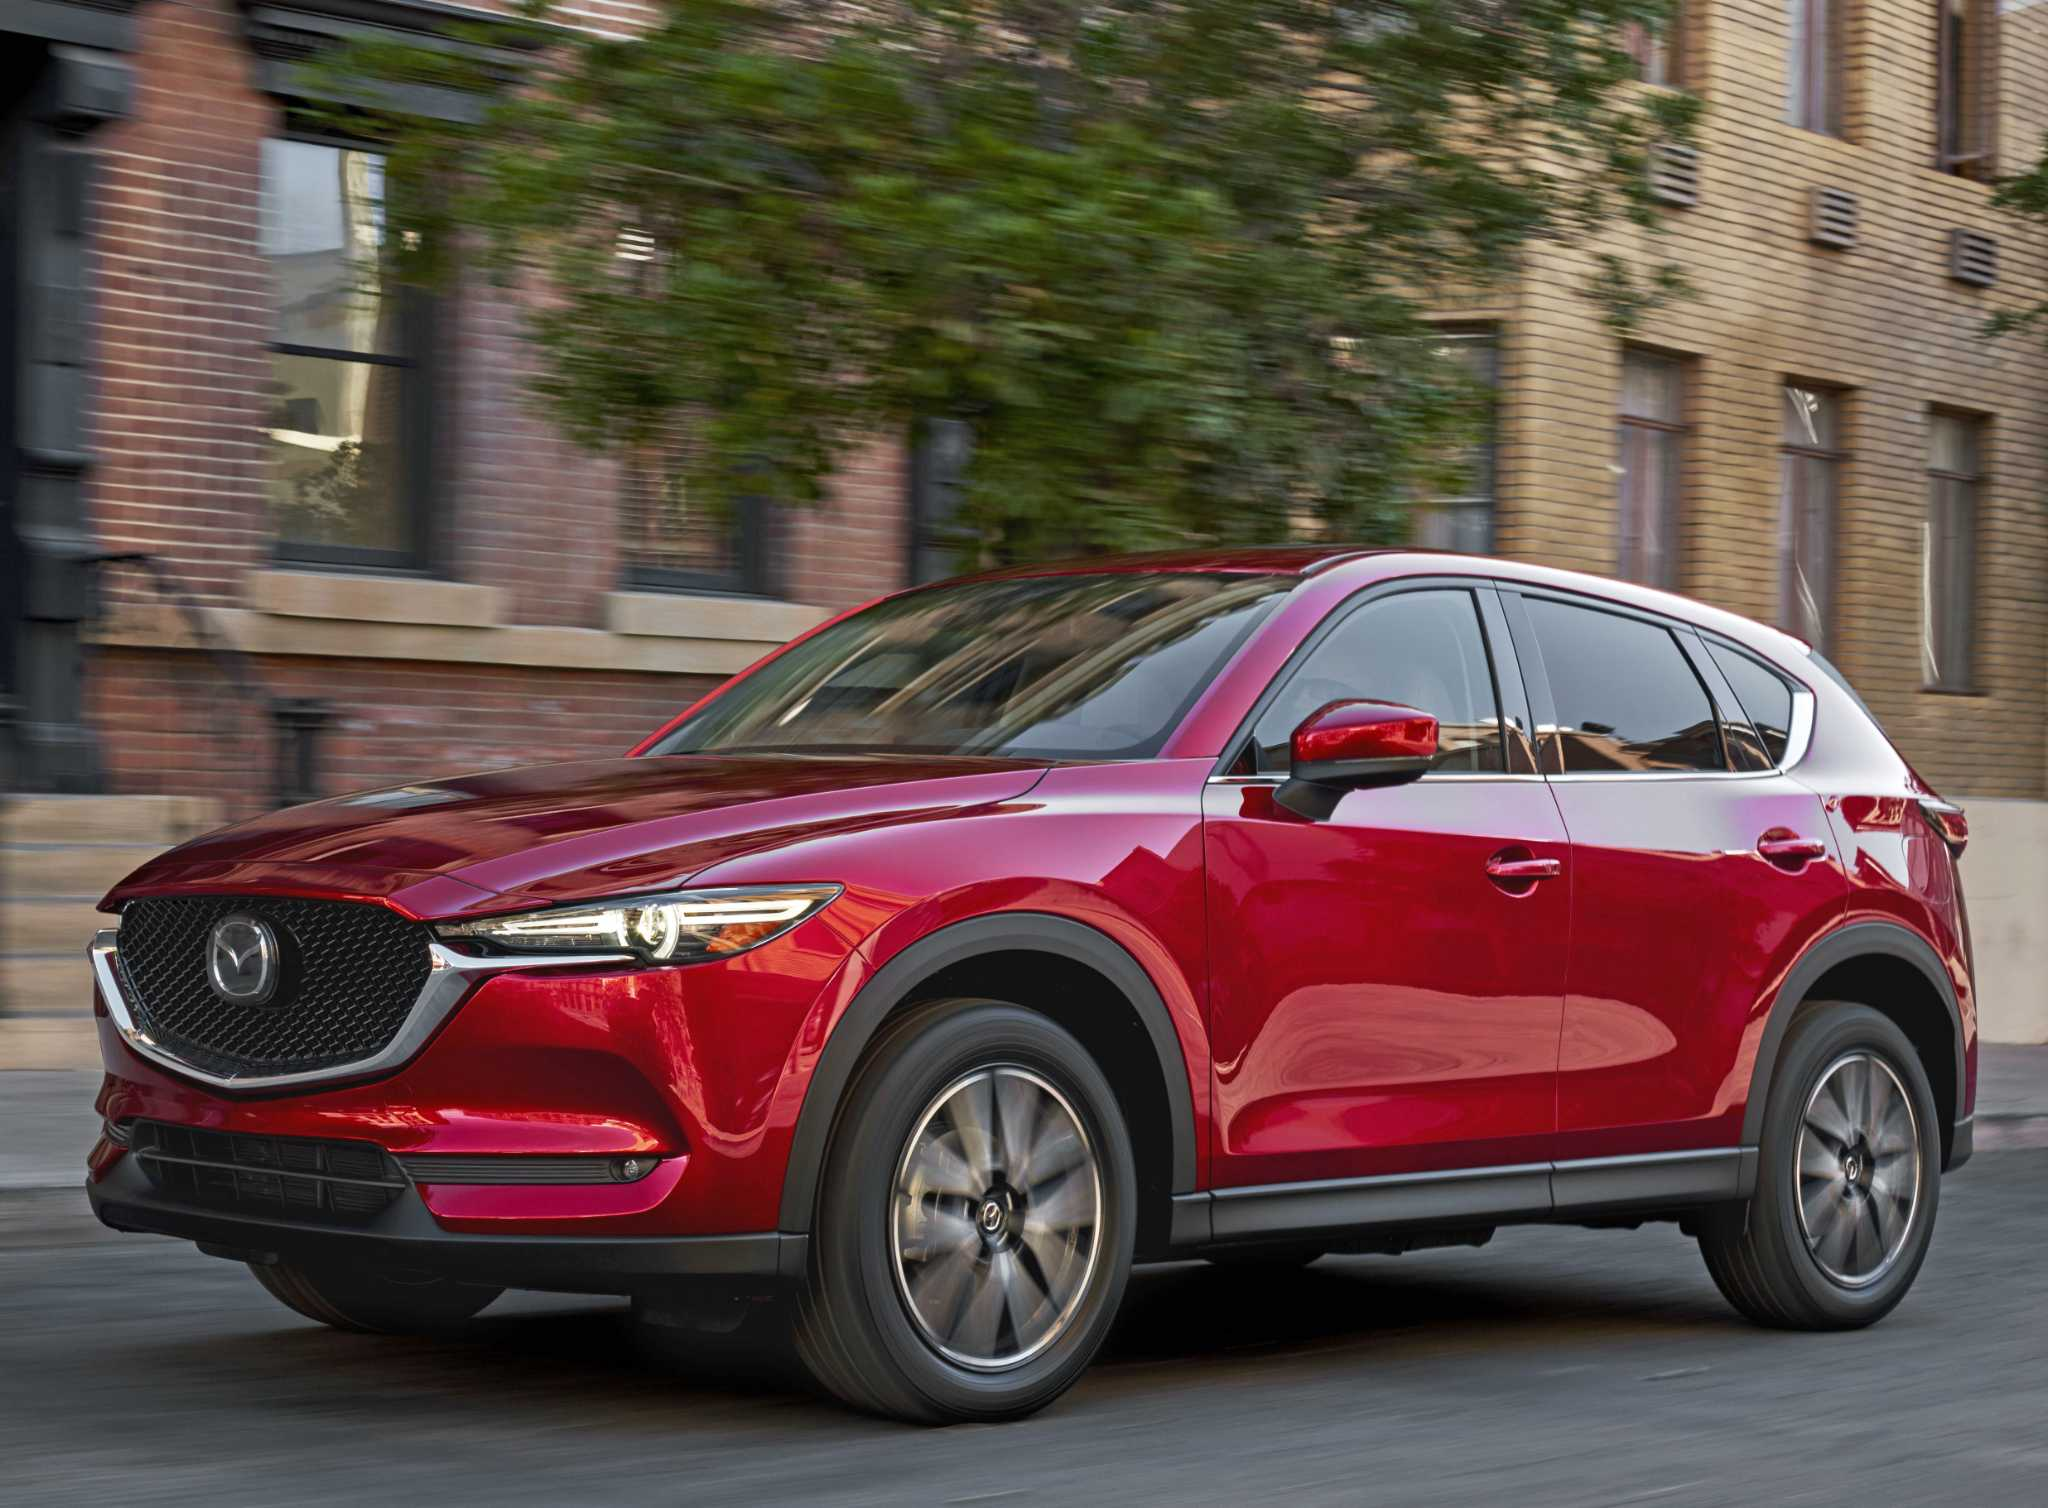 Mazda CX-5: Crossover gets upgrades for 2018, including more safety tech